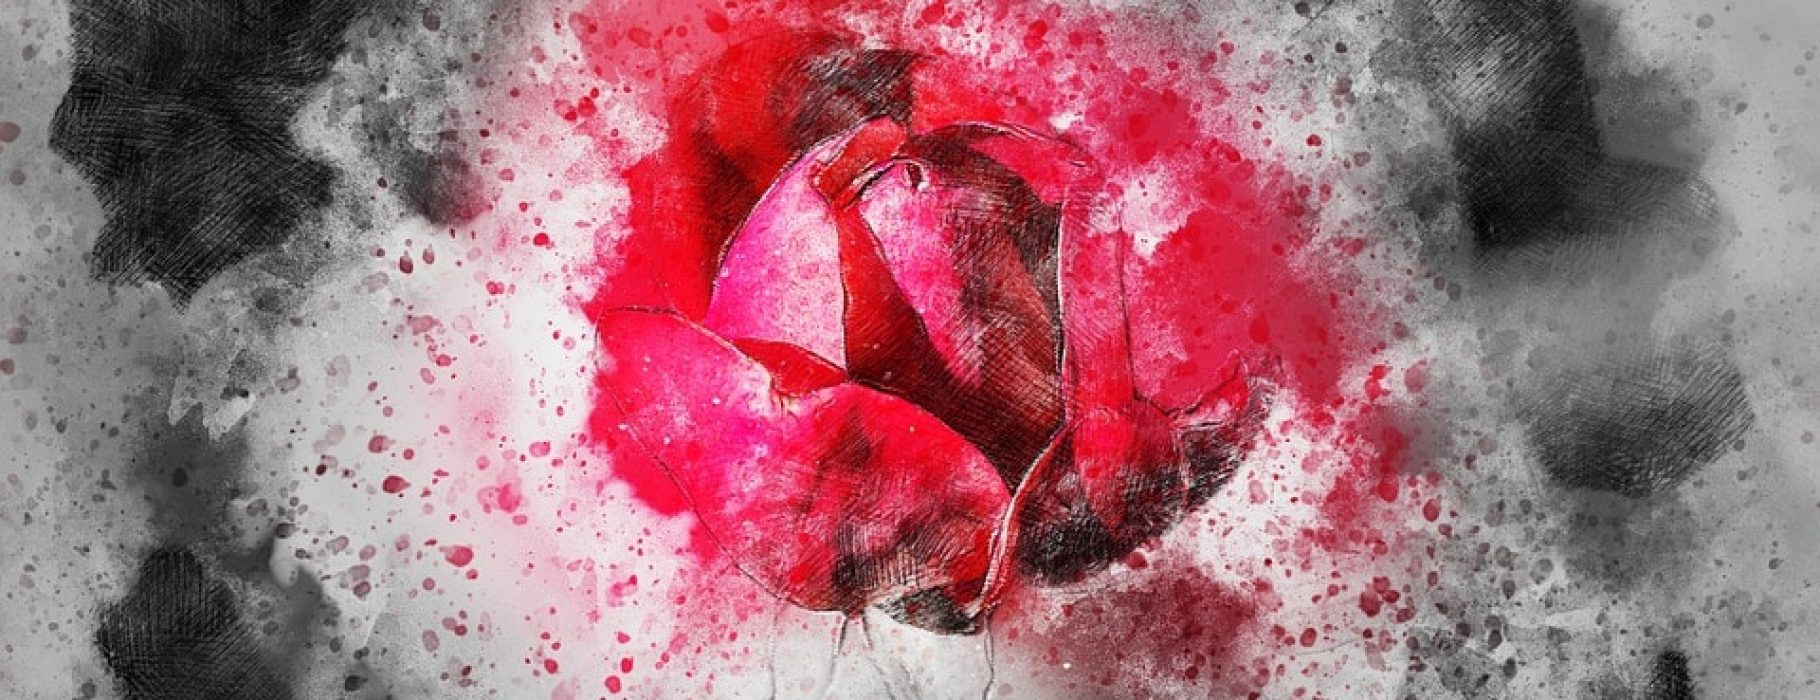 A red rose is breaking through a solid white/grey background